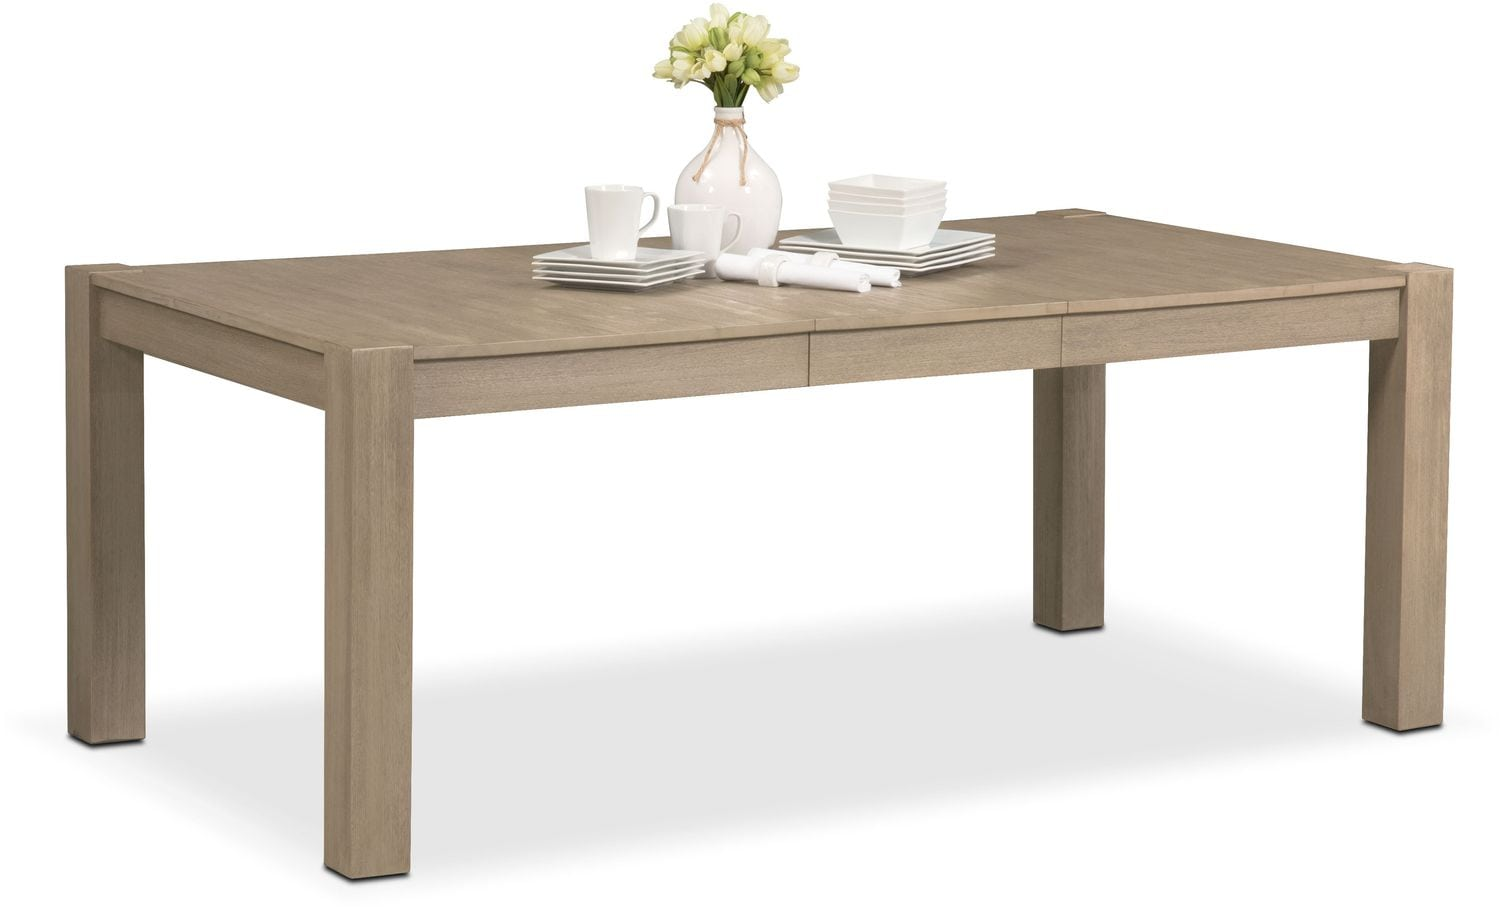 Tribeca Table - Gray